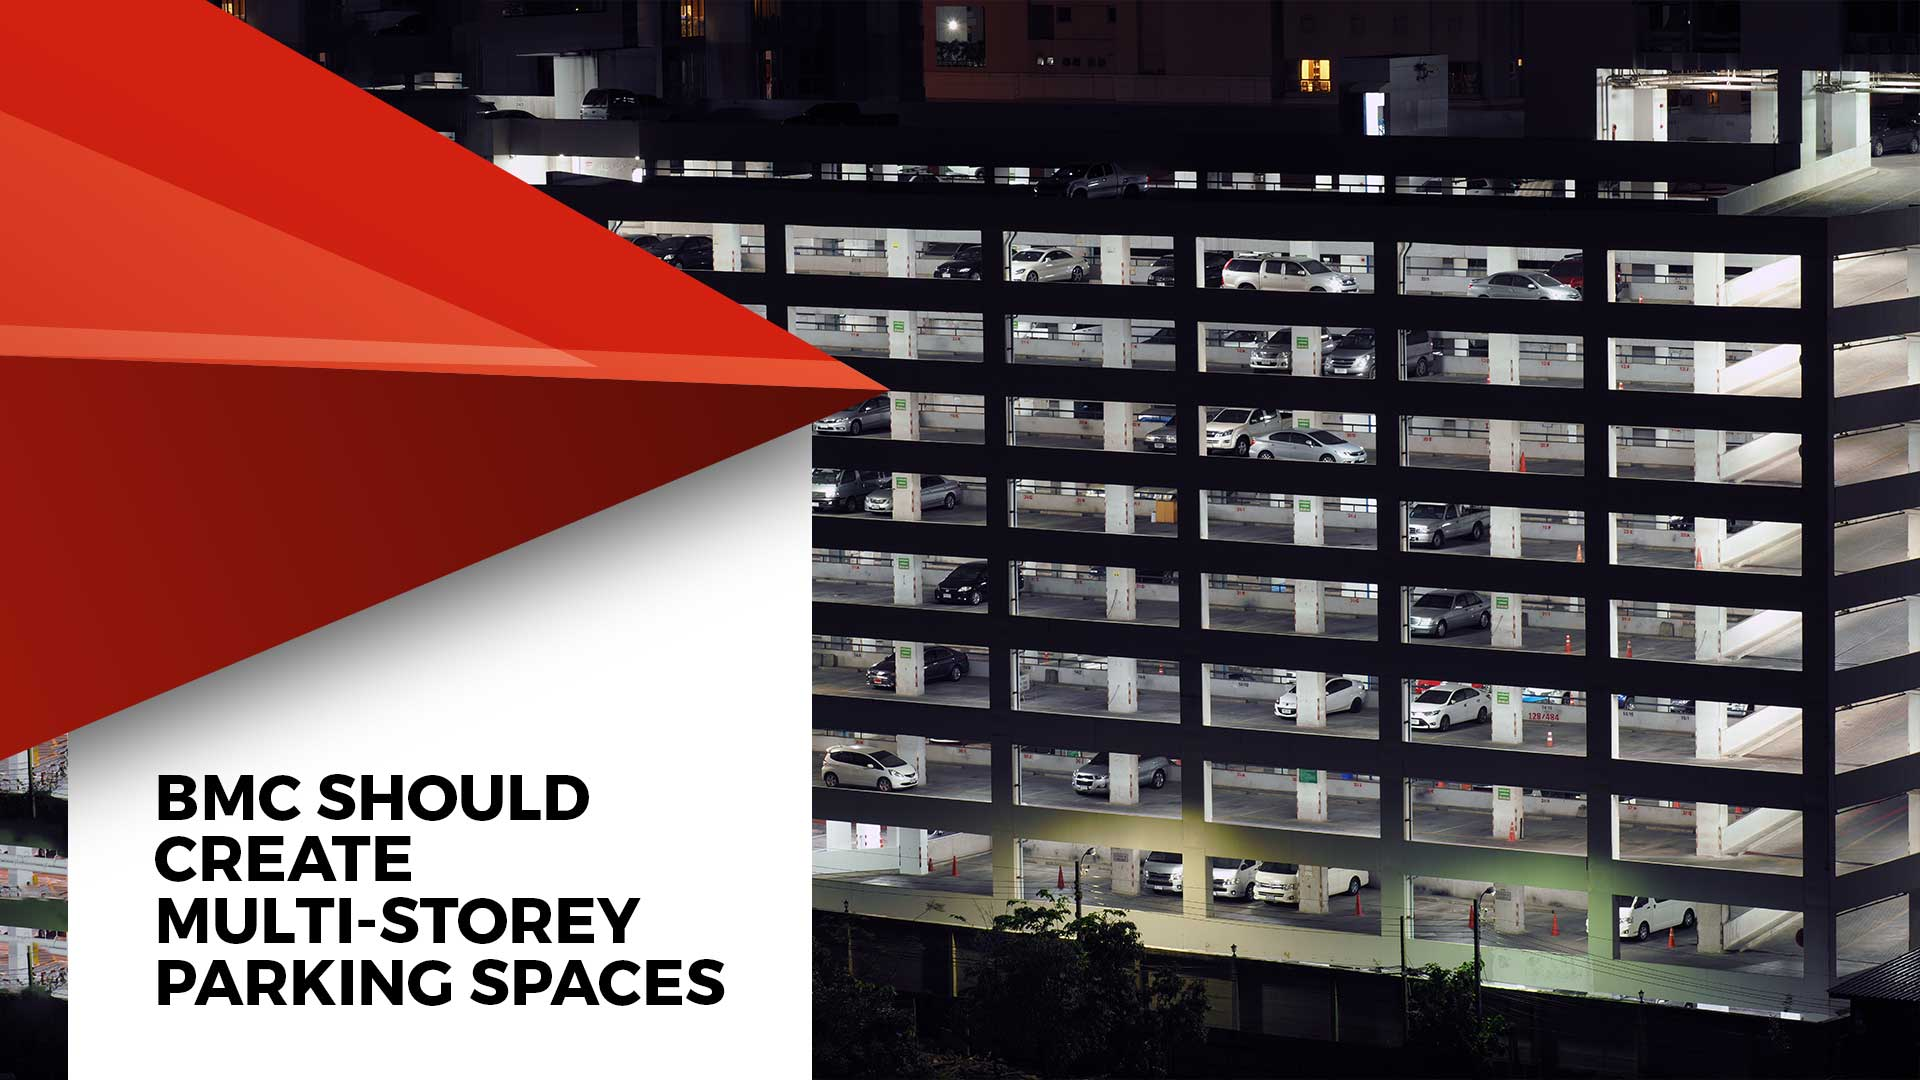 Experts Worried About Lack Of Parking Spaces Given In Buildings